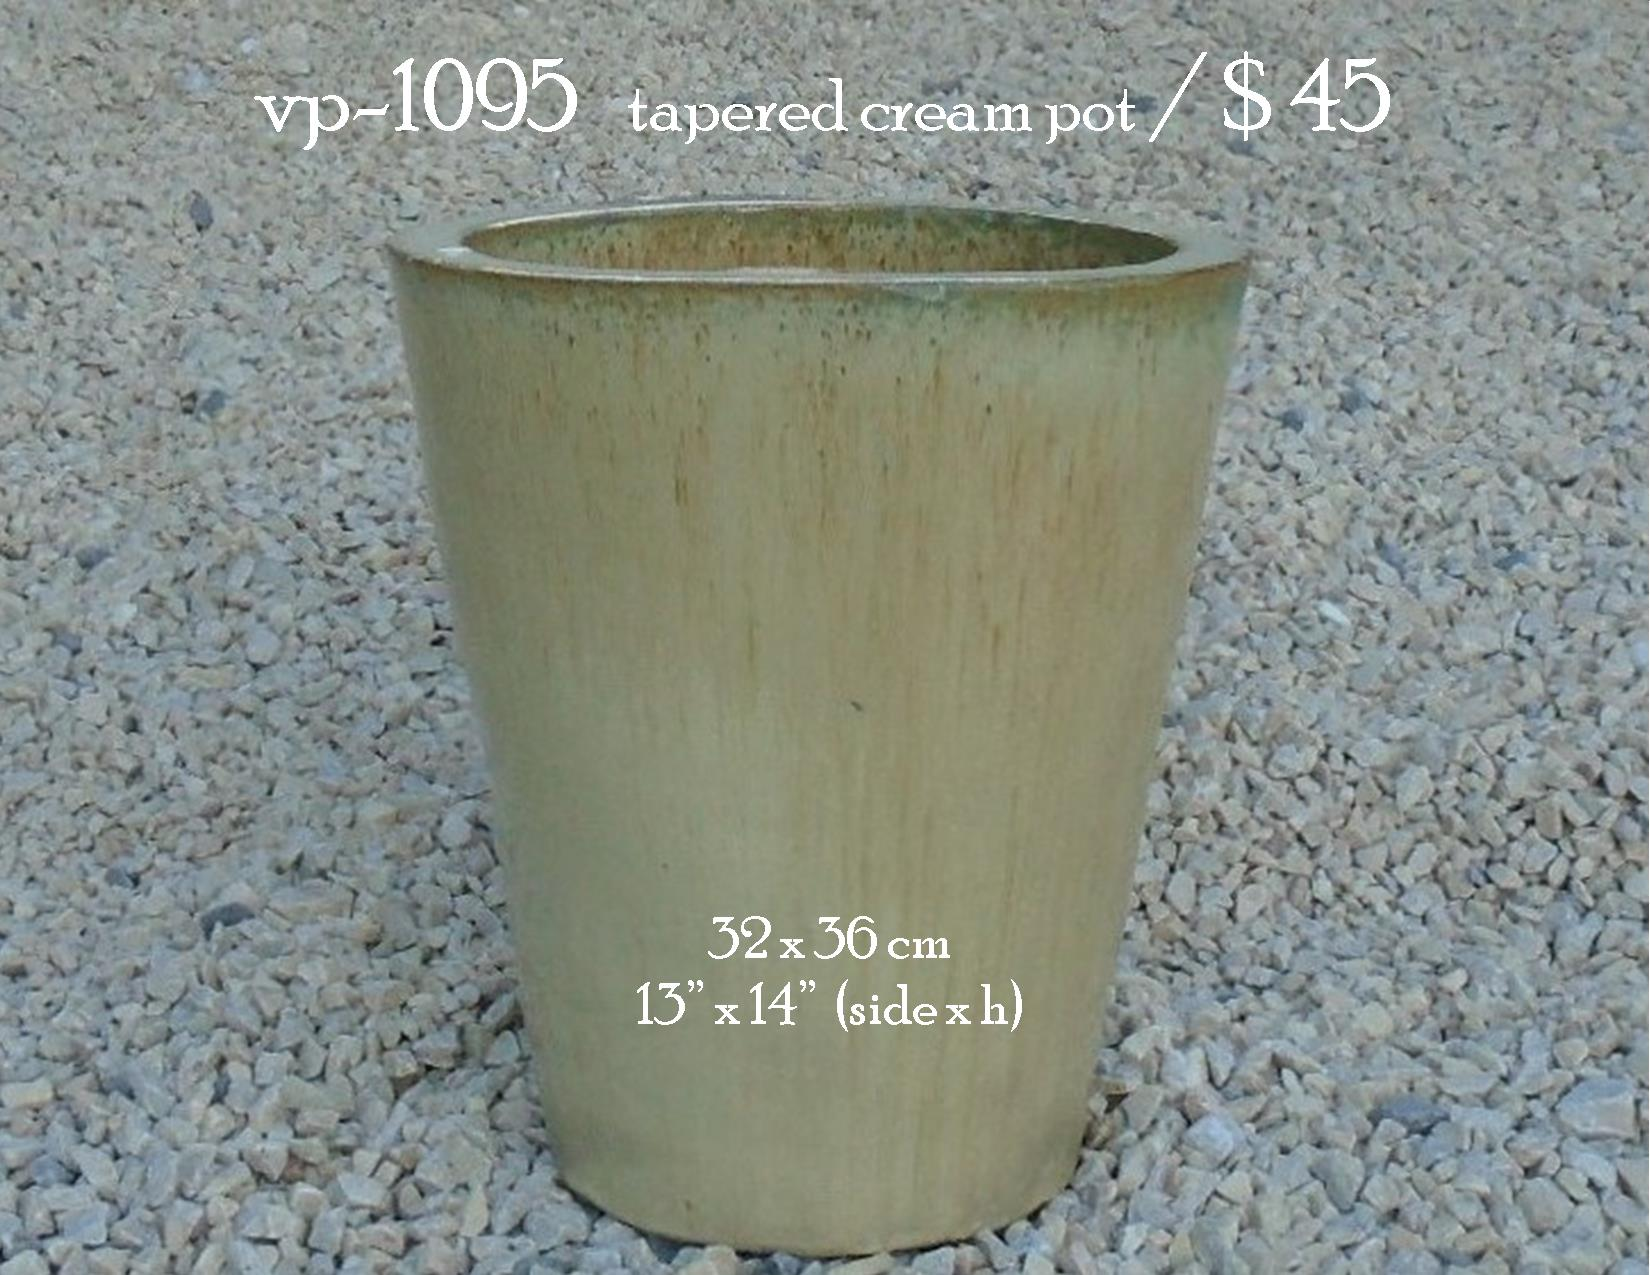 vp-1095   tapered cream pot